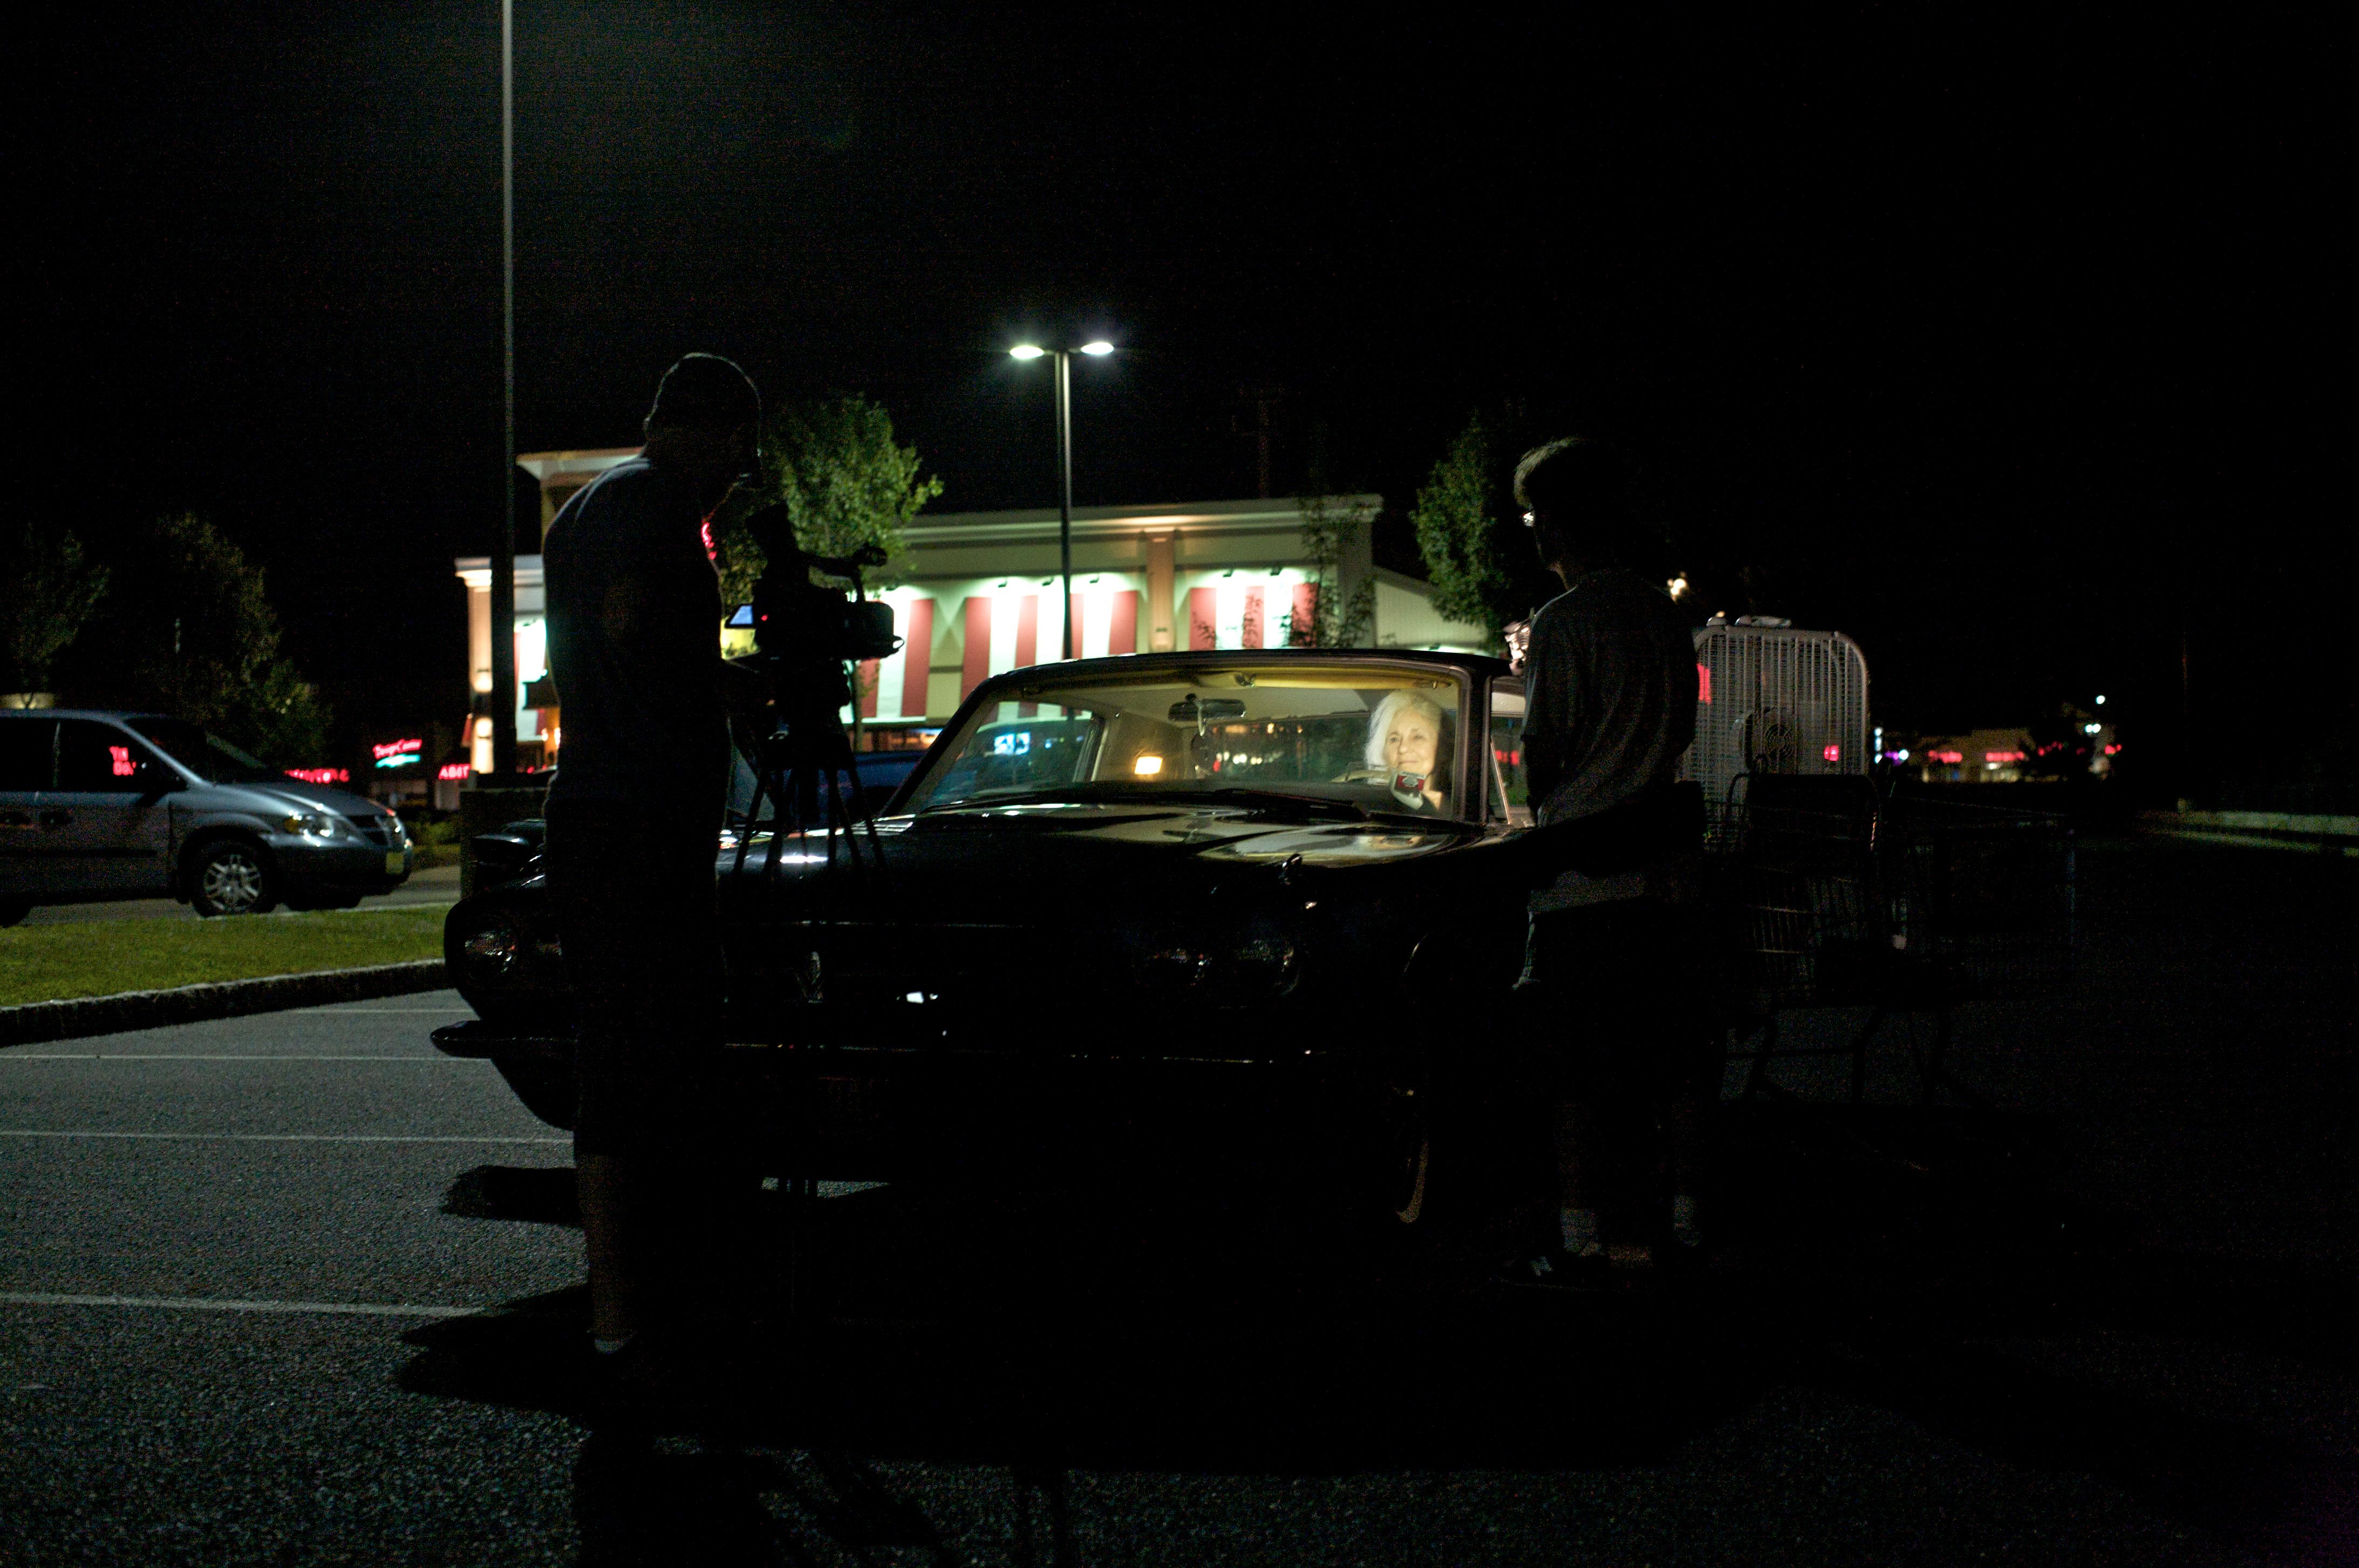 parking lot night